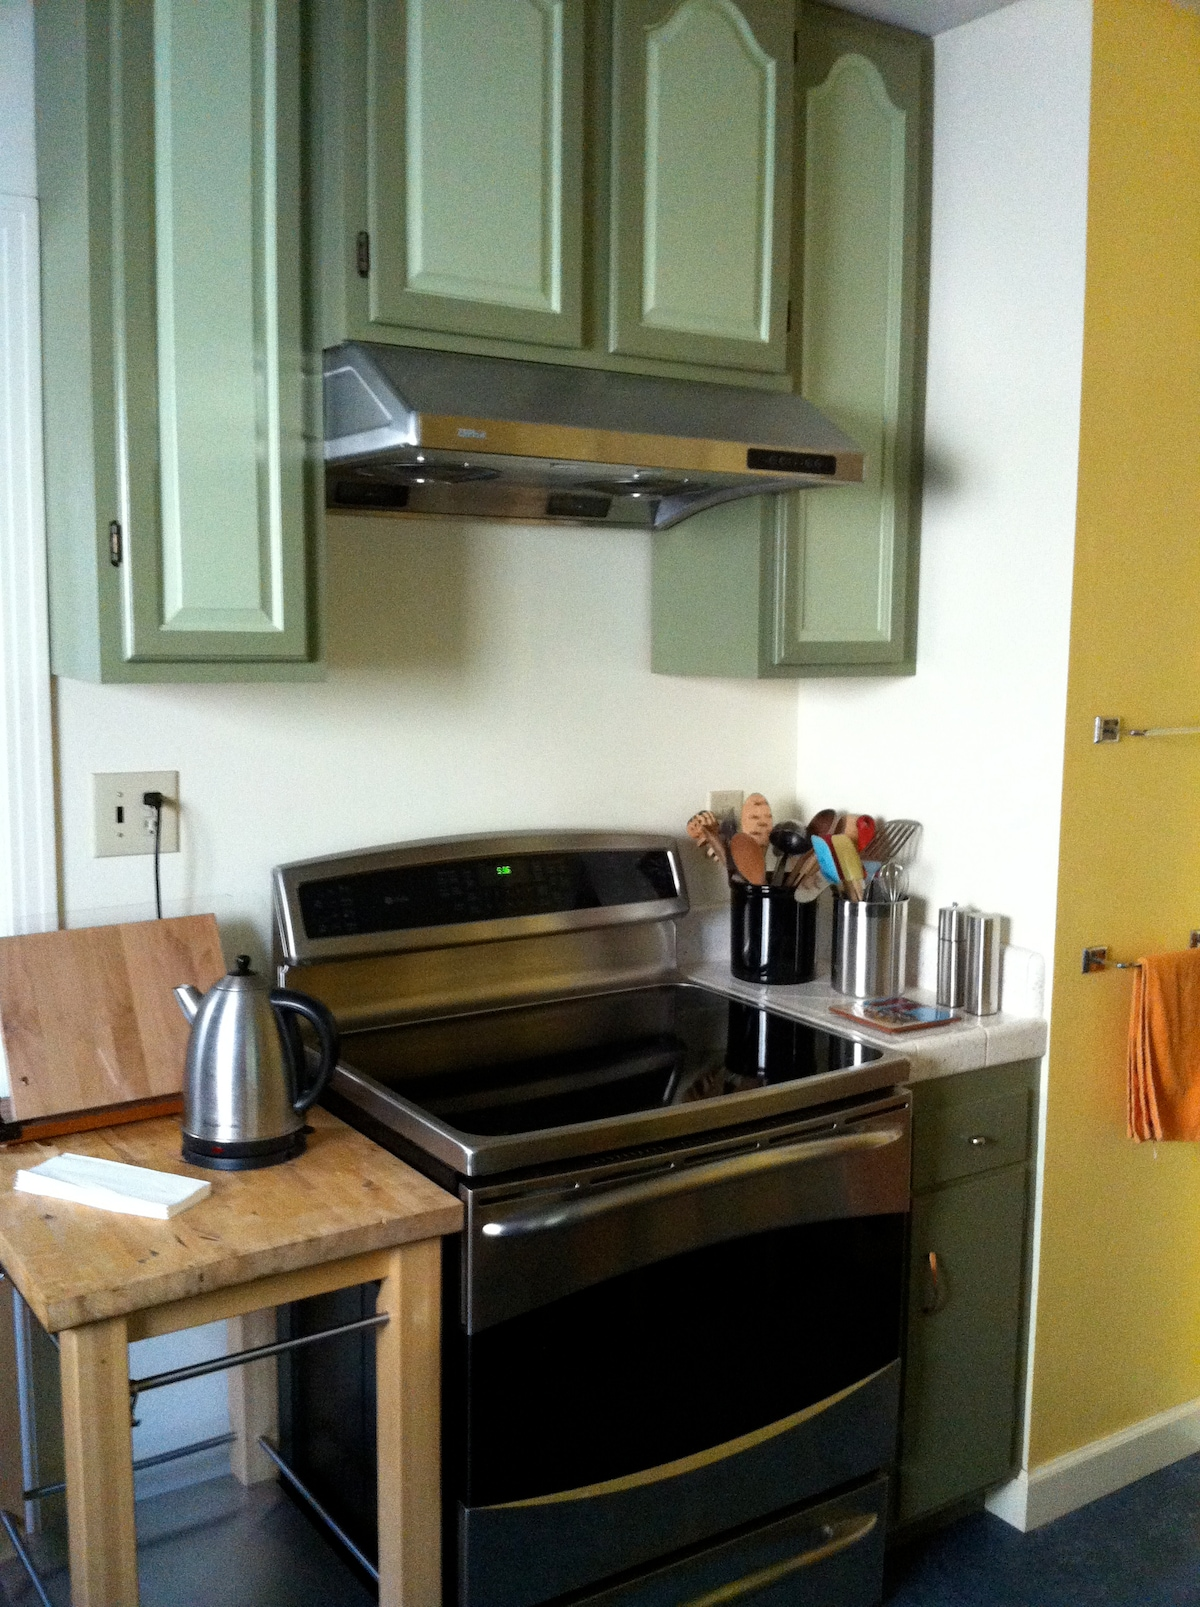 Kitchen features an induction stove and dishwasher to make life easier.